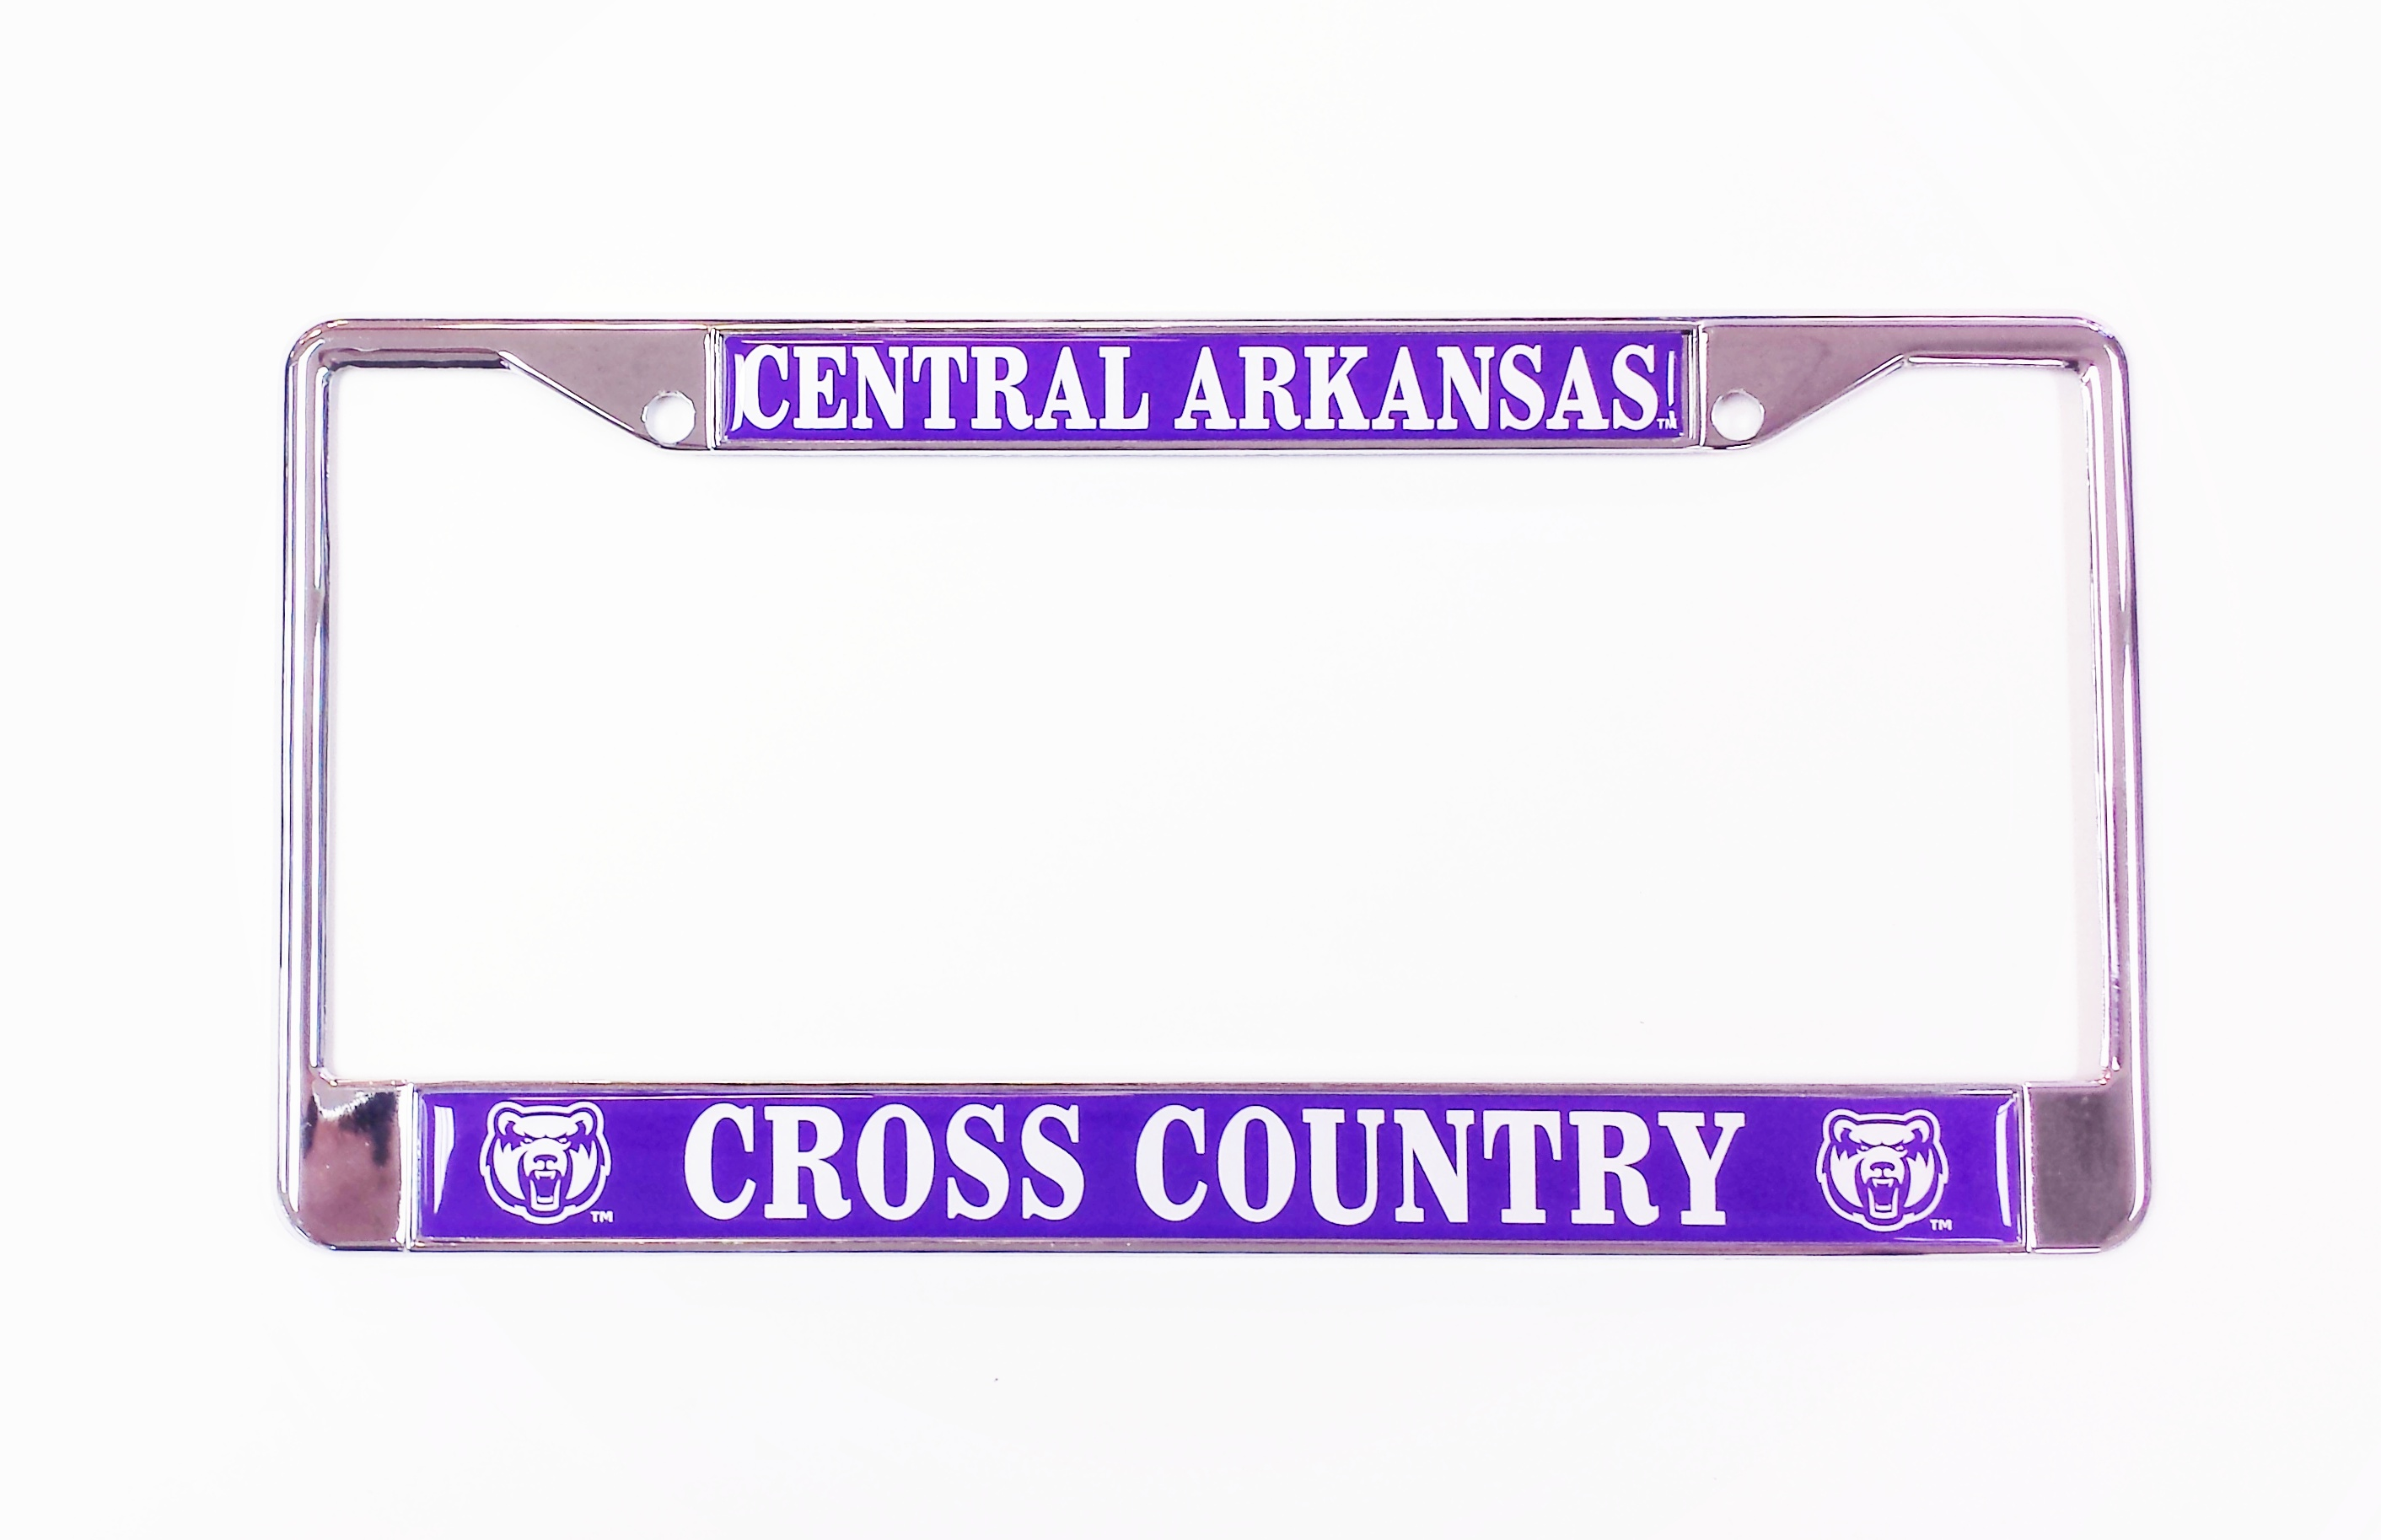 Central Arkansas Cross Country License Frame